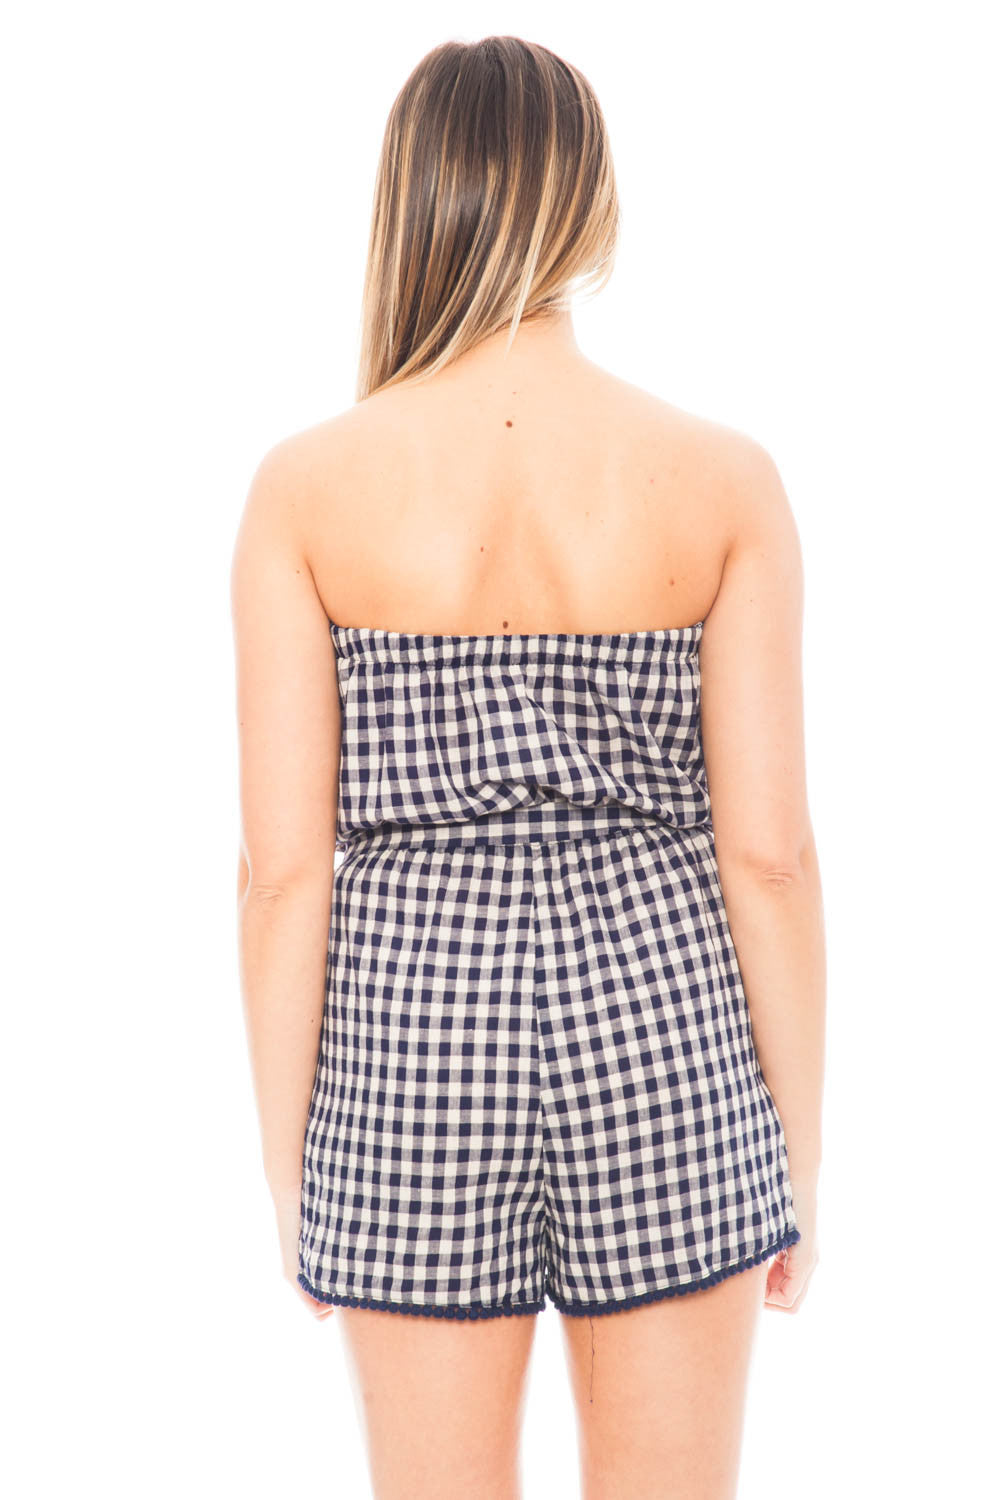 Romper - Gingham Strapless Romper with Floral Patch by Everly